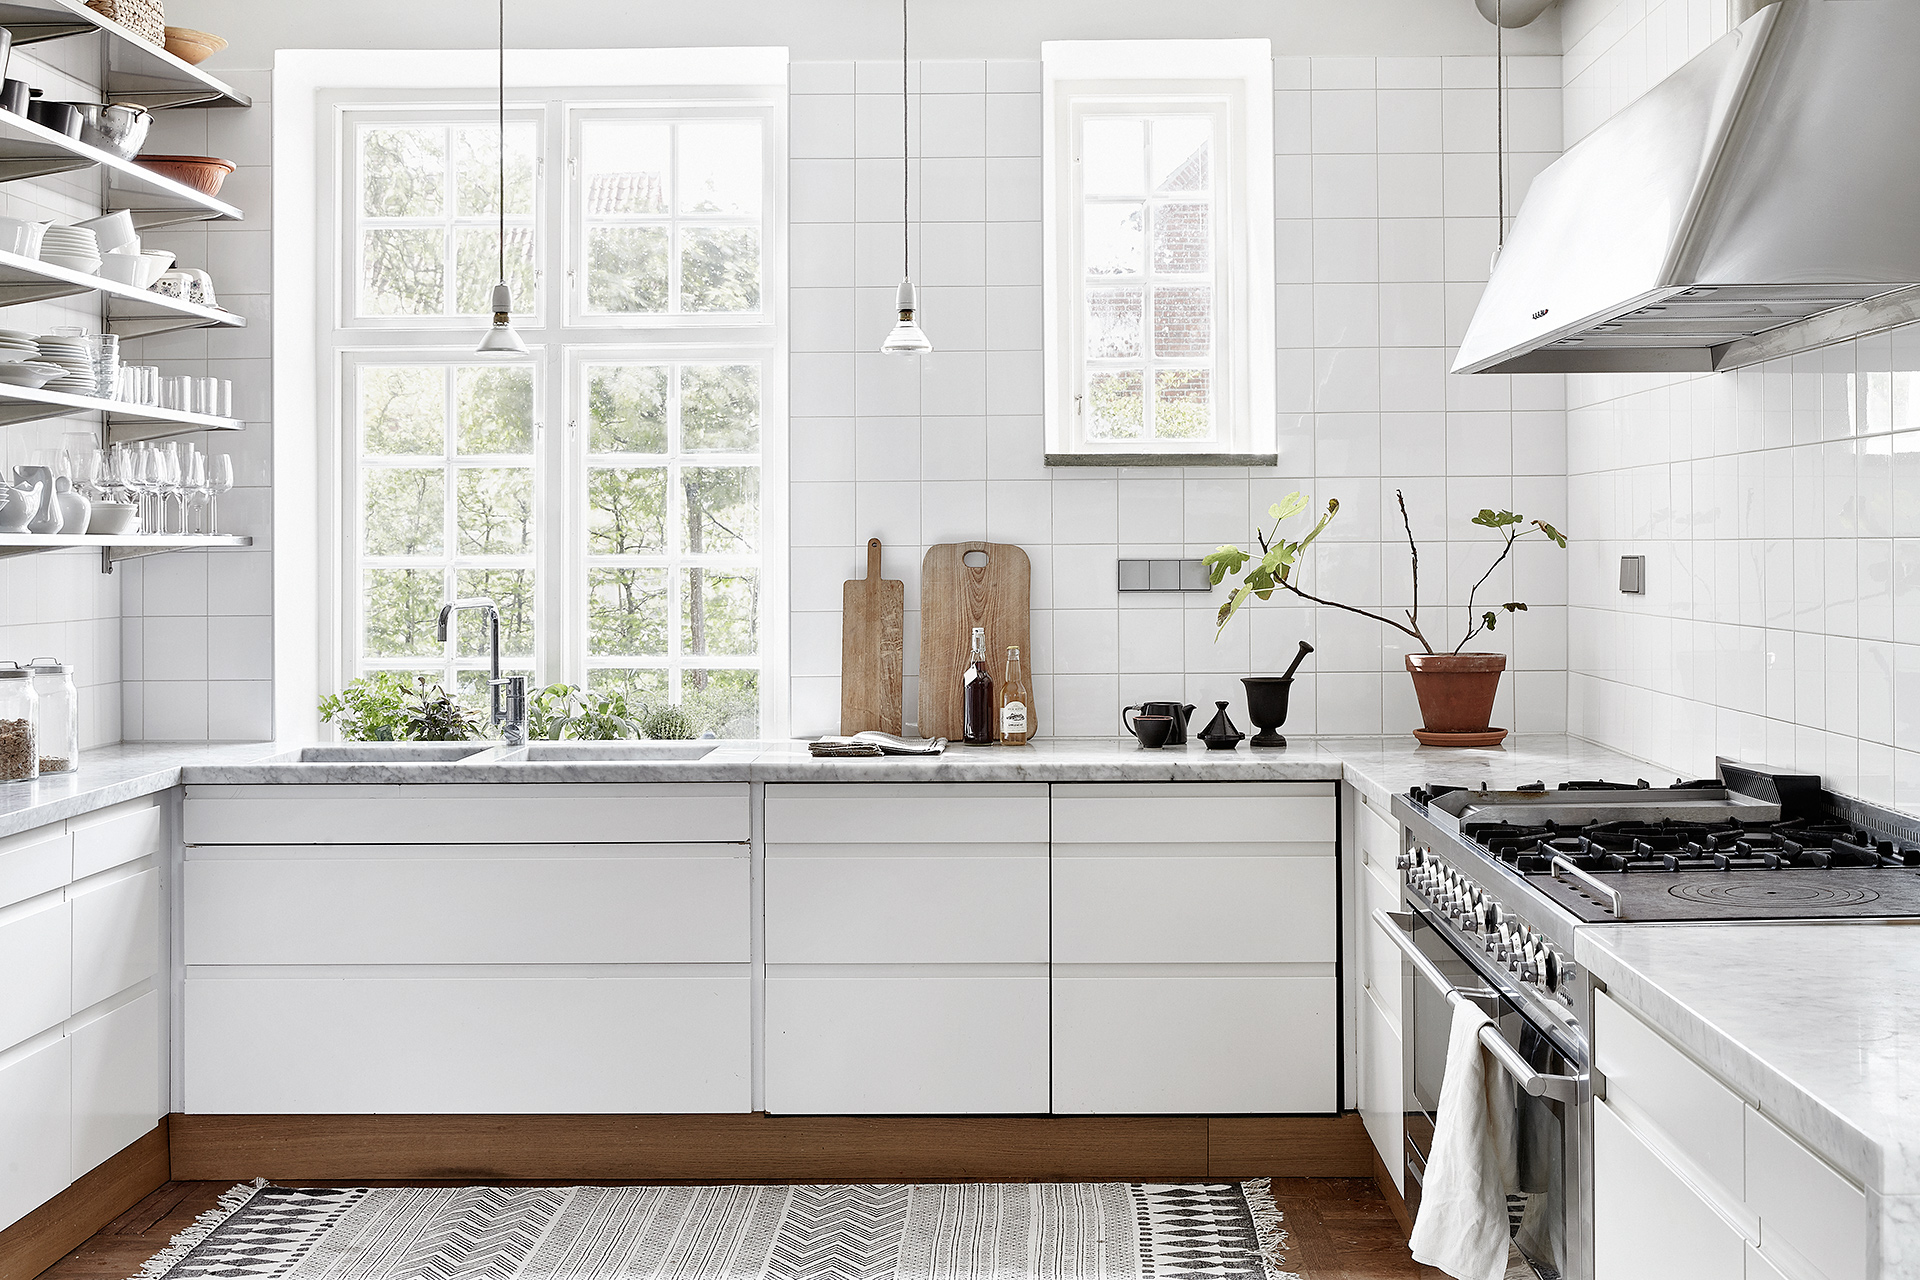 Swedish country house coco lapine designcoco lapine design - D co keuken ...